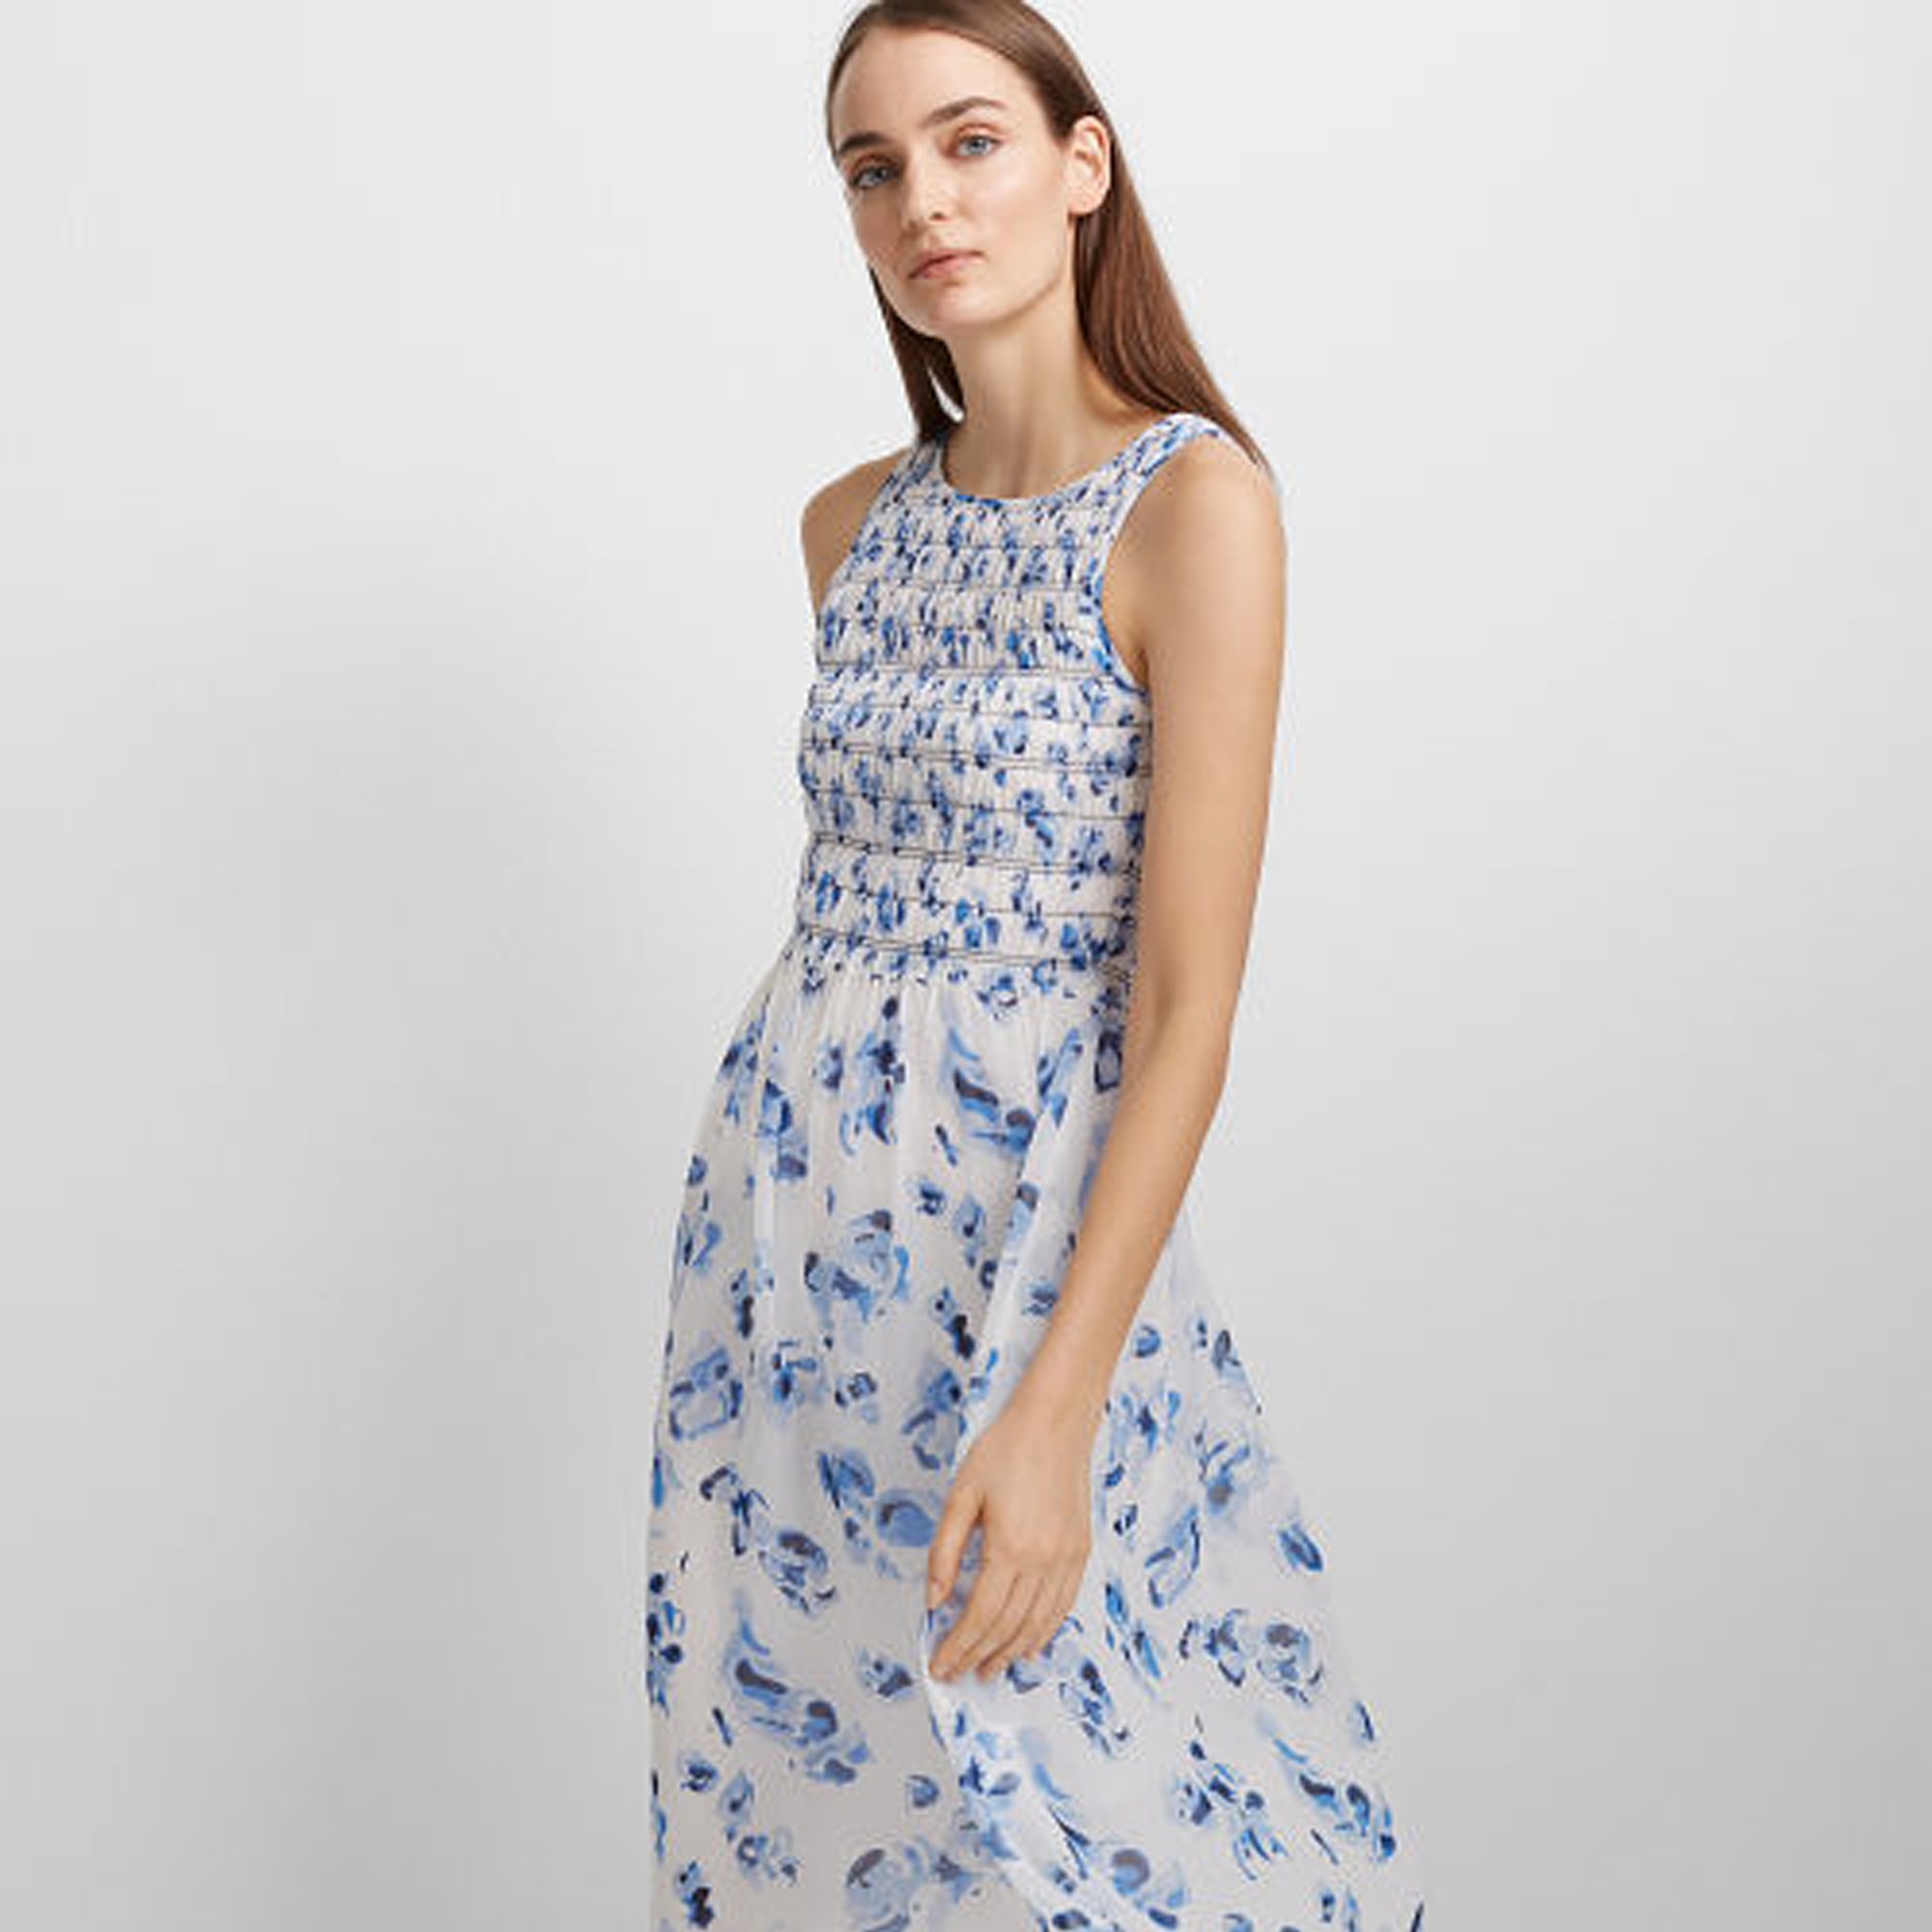 Feleenie Silk Dress   HK$2,690